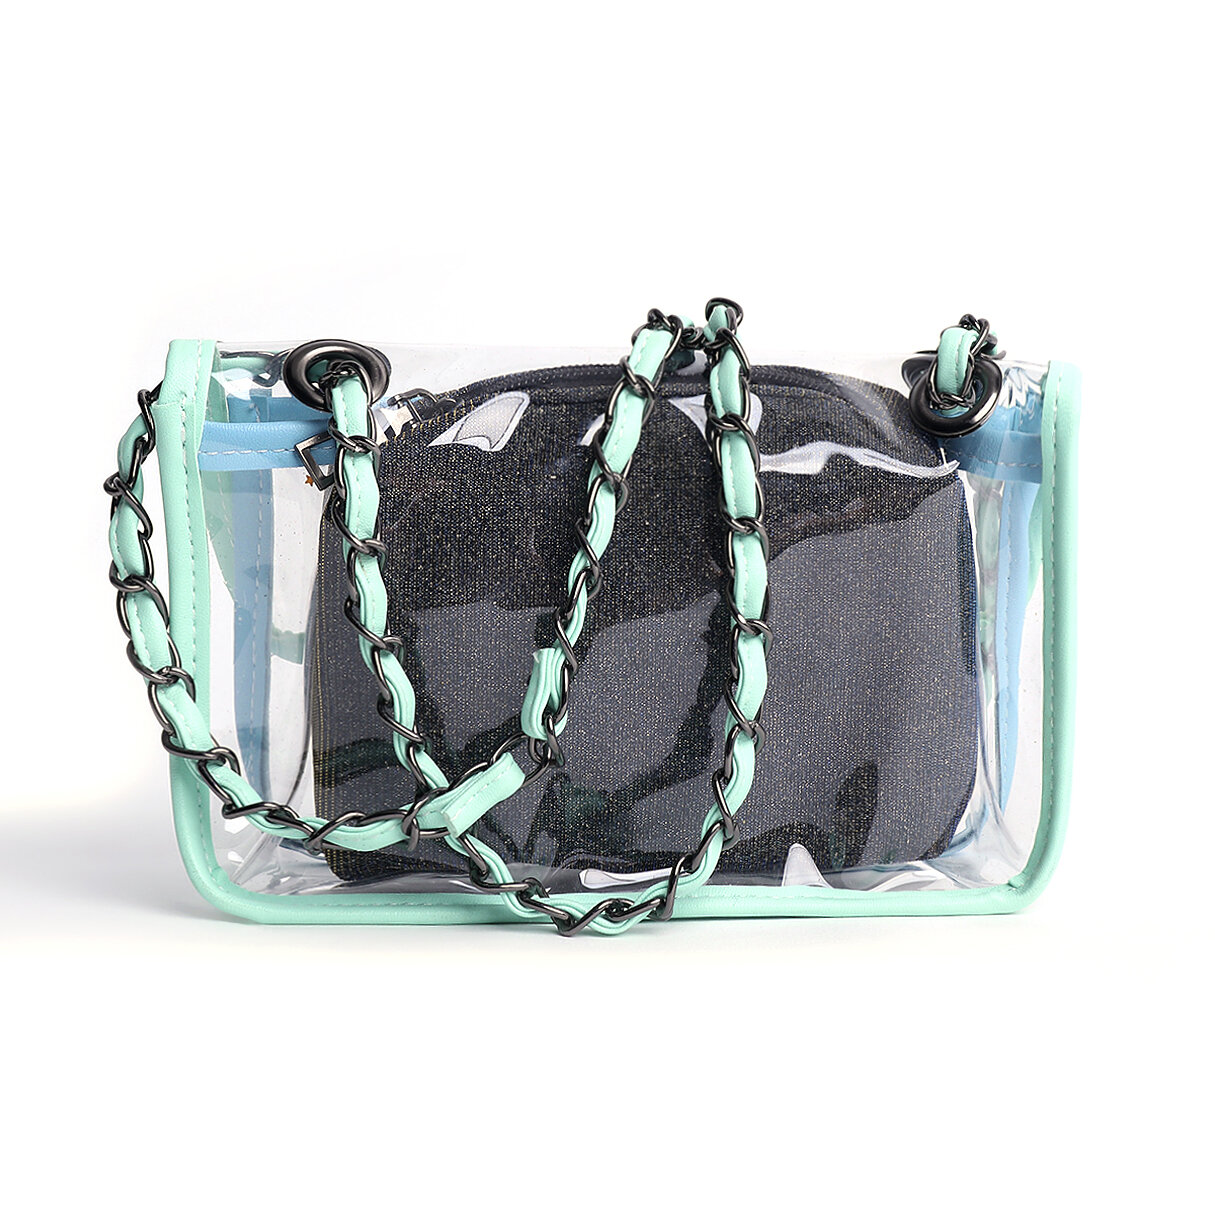 Green PVC Crossbody bags with Small PU Bags - 4